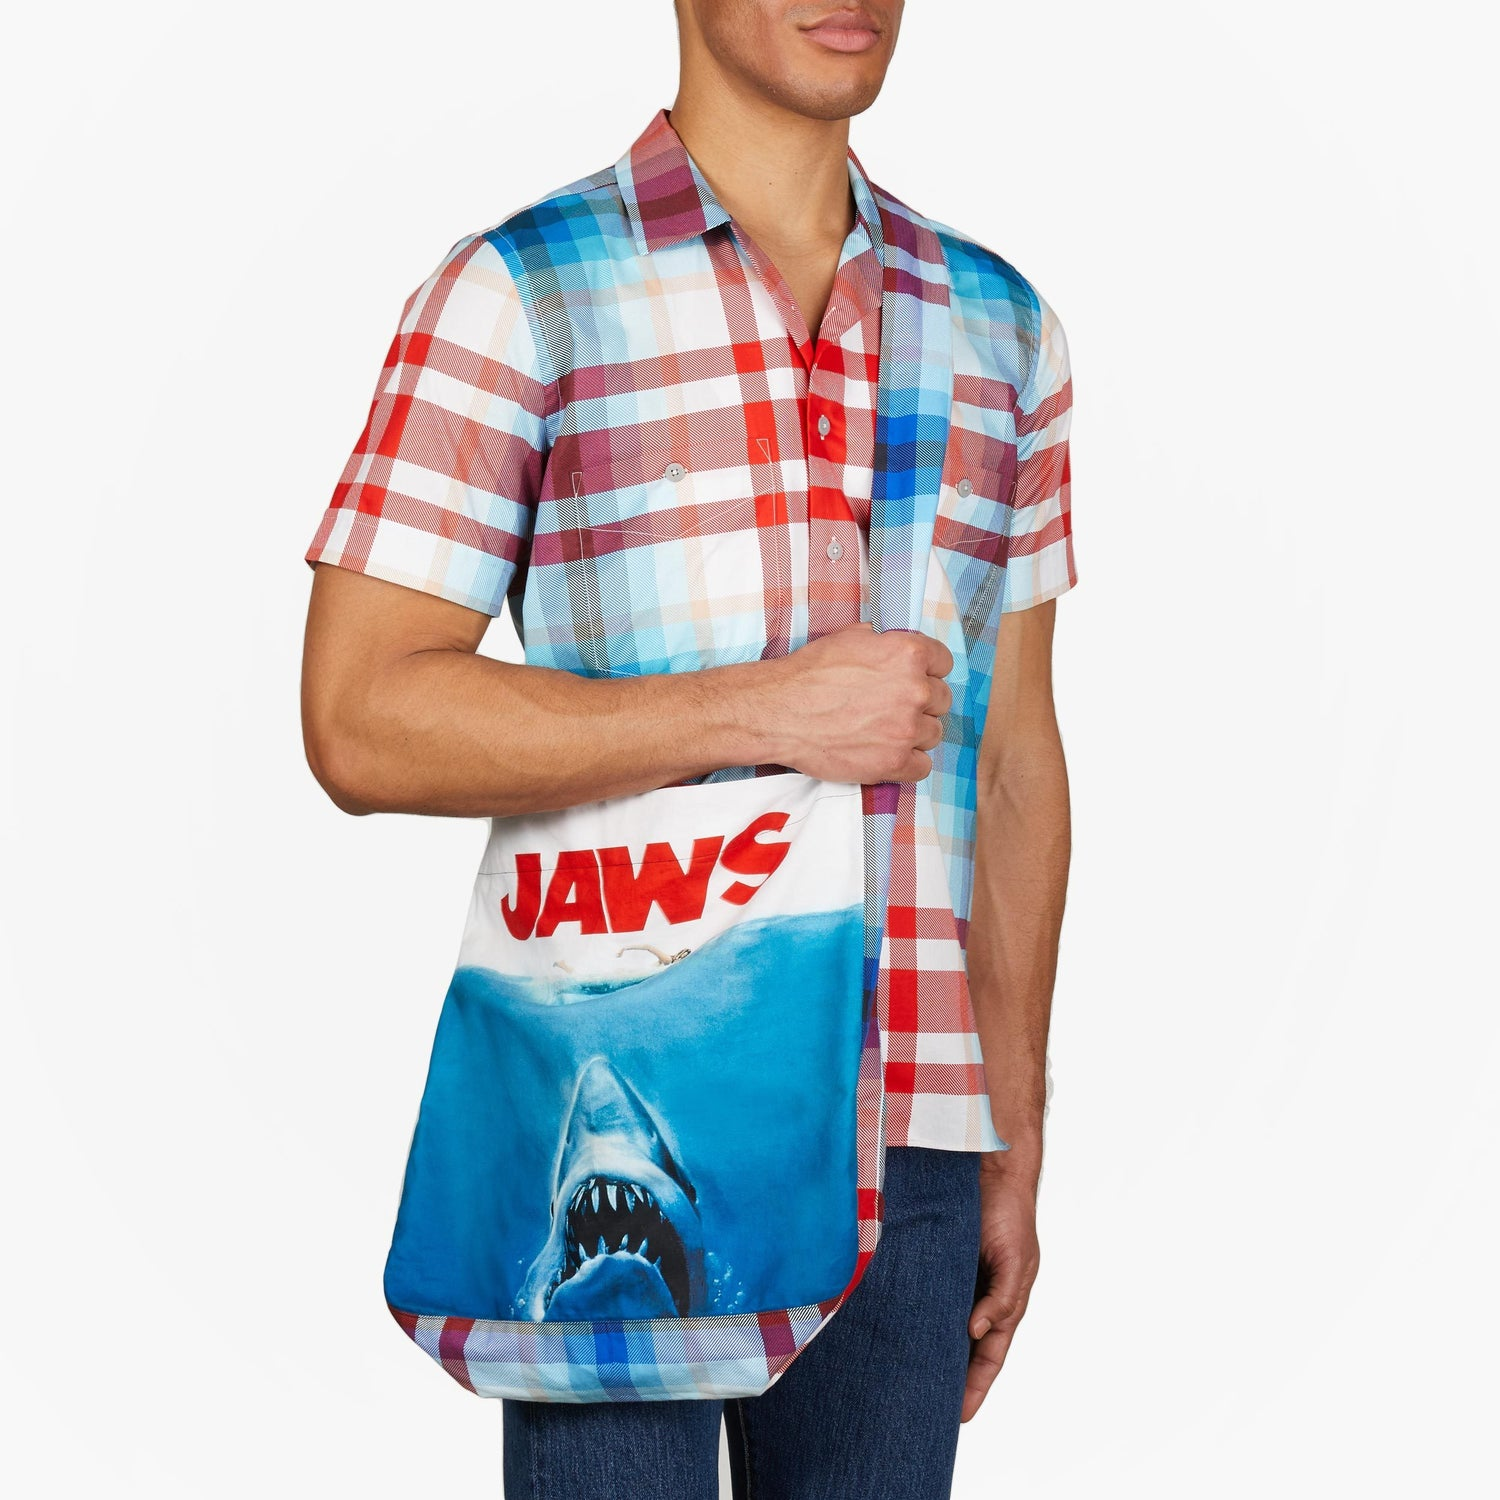 The Jaws Plaid Shoulder Bag